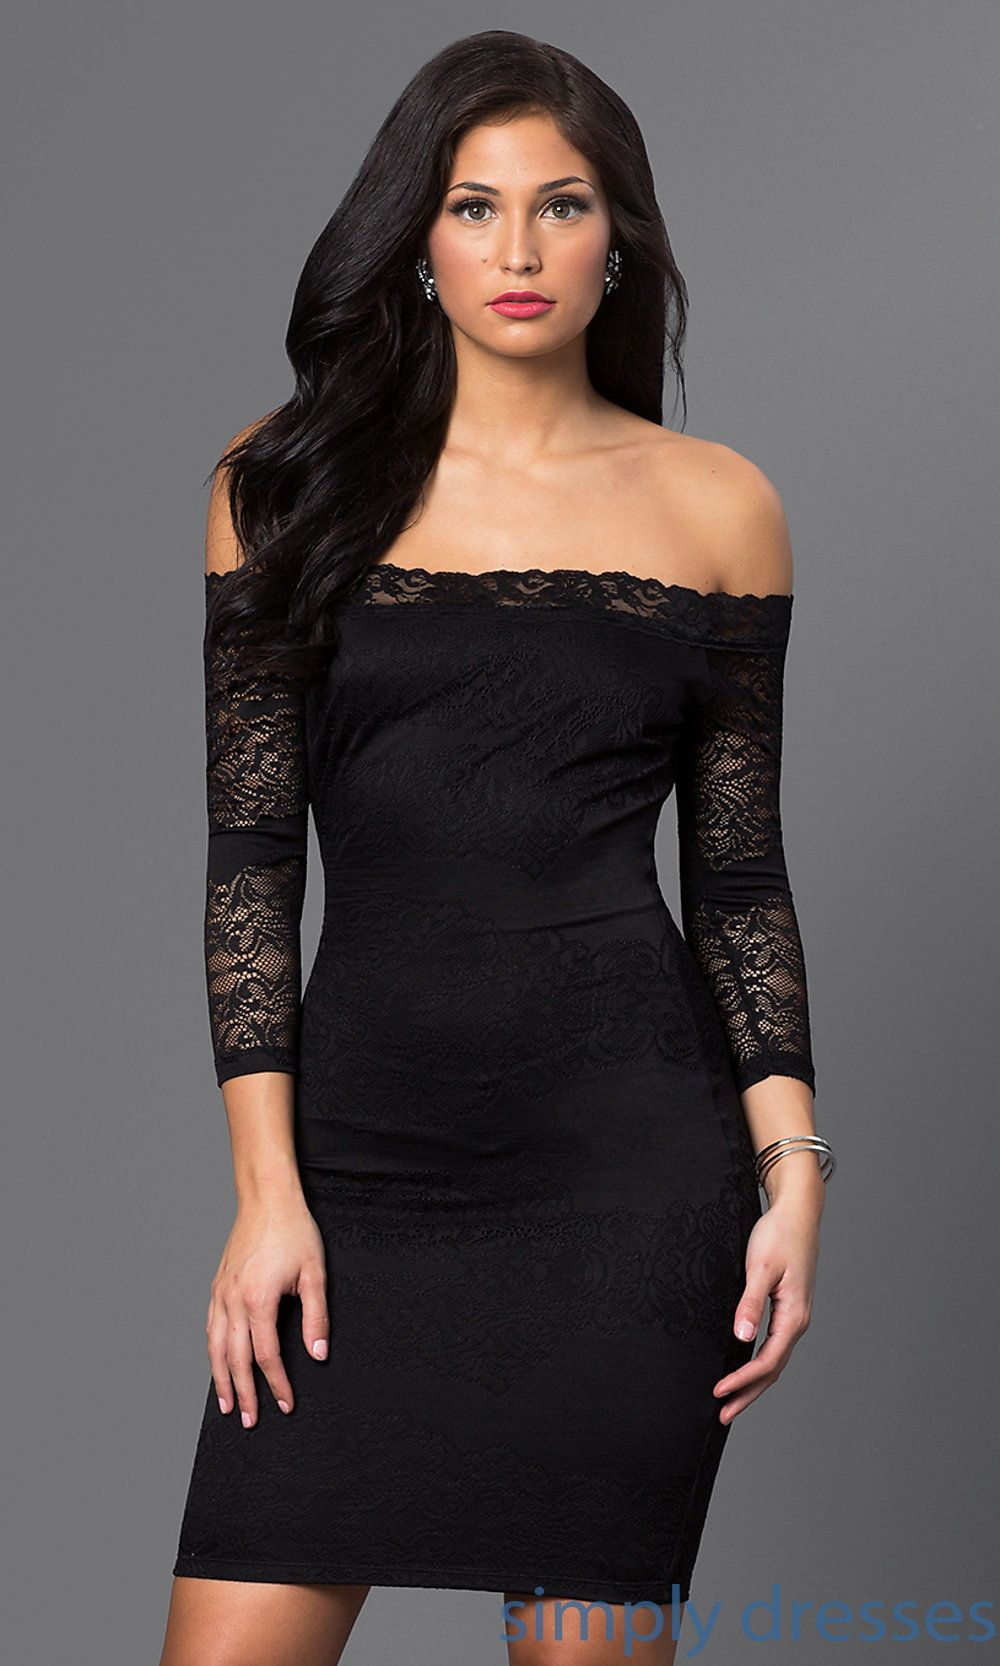 Short Off Shoulder Three Quarter Sleeve Lace Dress Long Sleeve Cocktail Dress Dresses Lace Dress With Sleeves